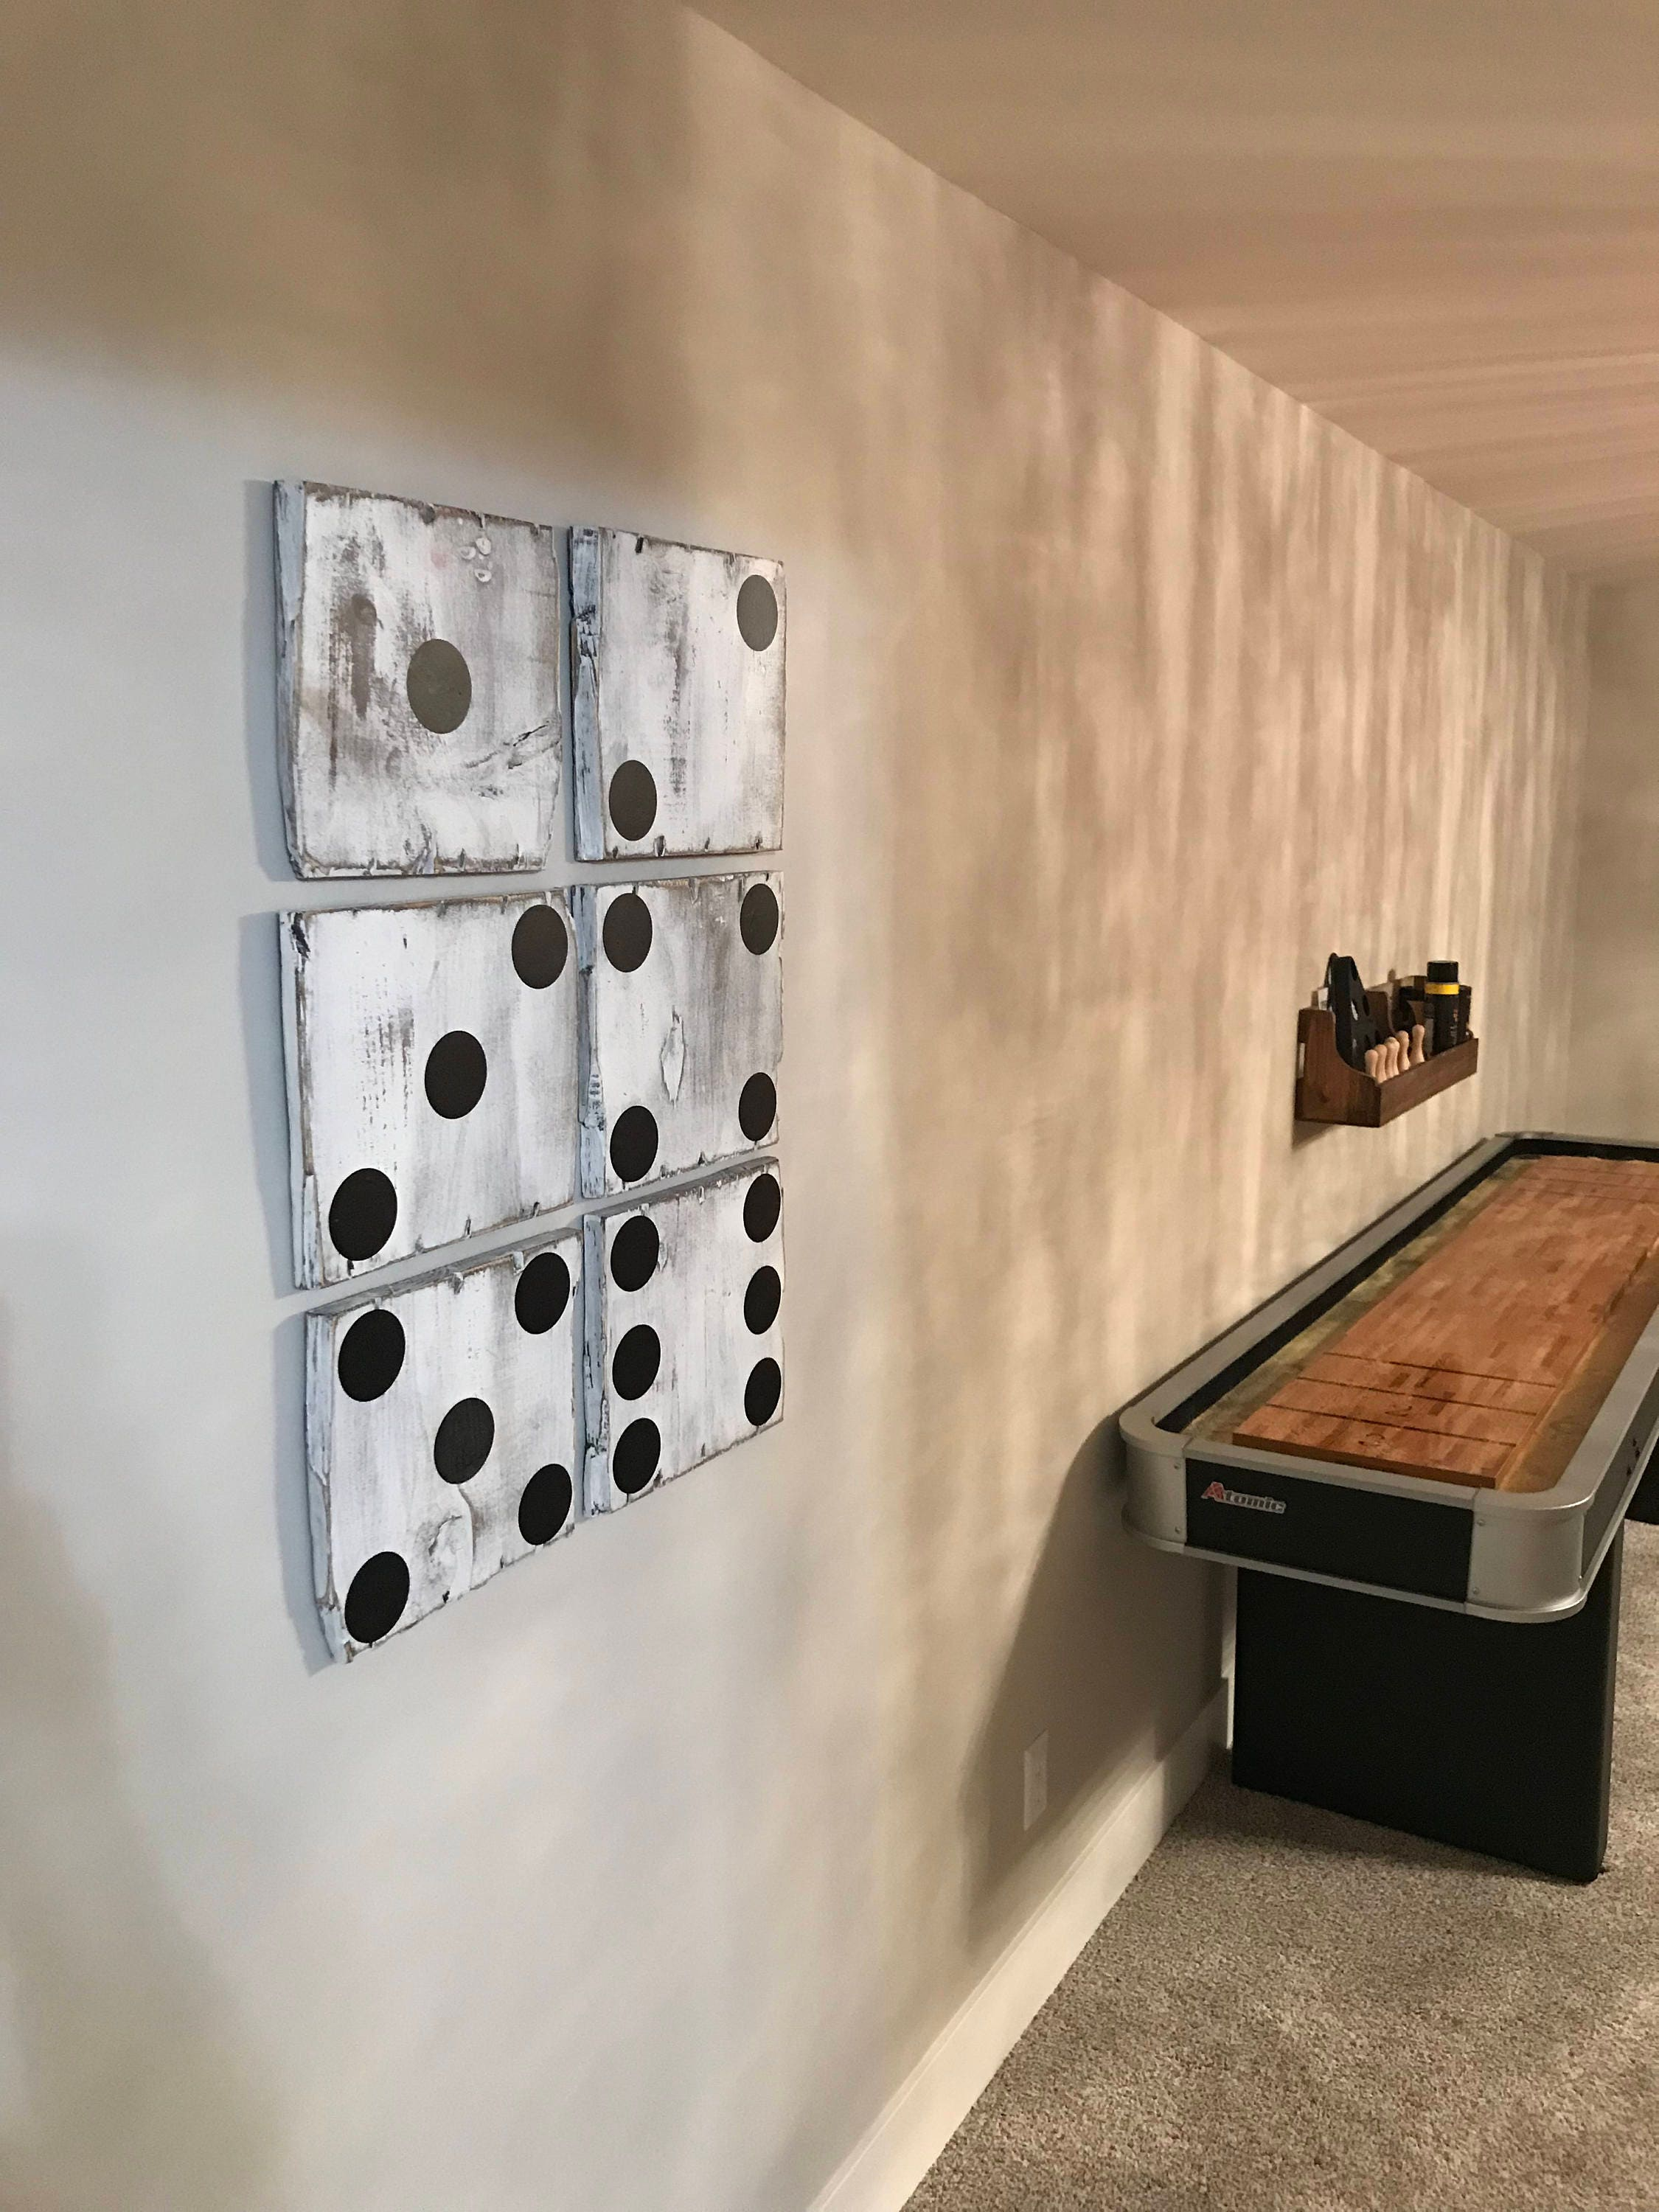 dice decor rustic dice rustic dice decor rustic wood dice rustic wood dice decore dice wall. Black Bedroom Furniture Sets. Home Design Ideas